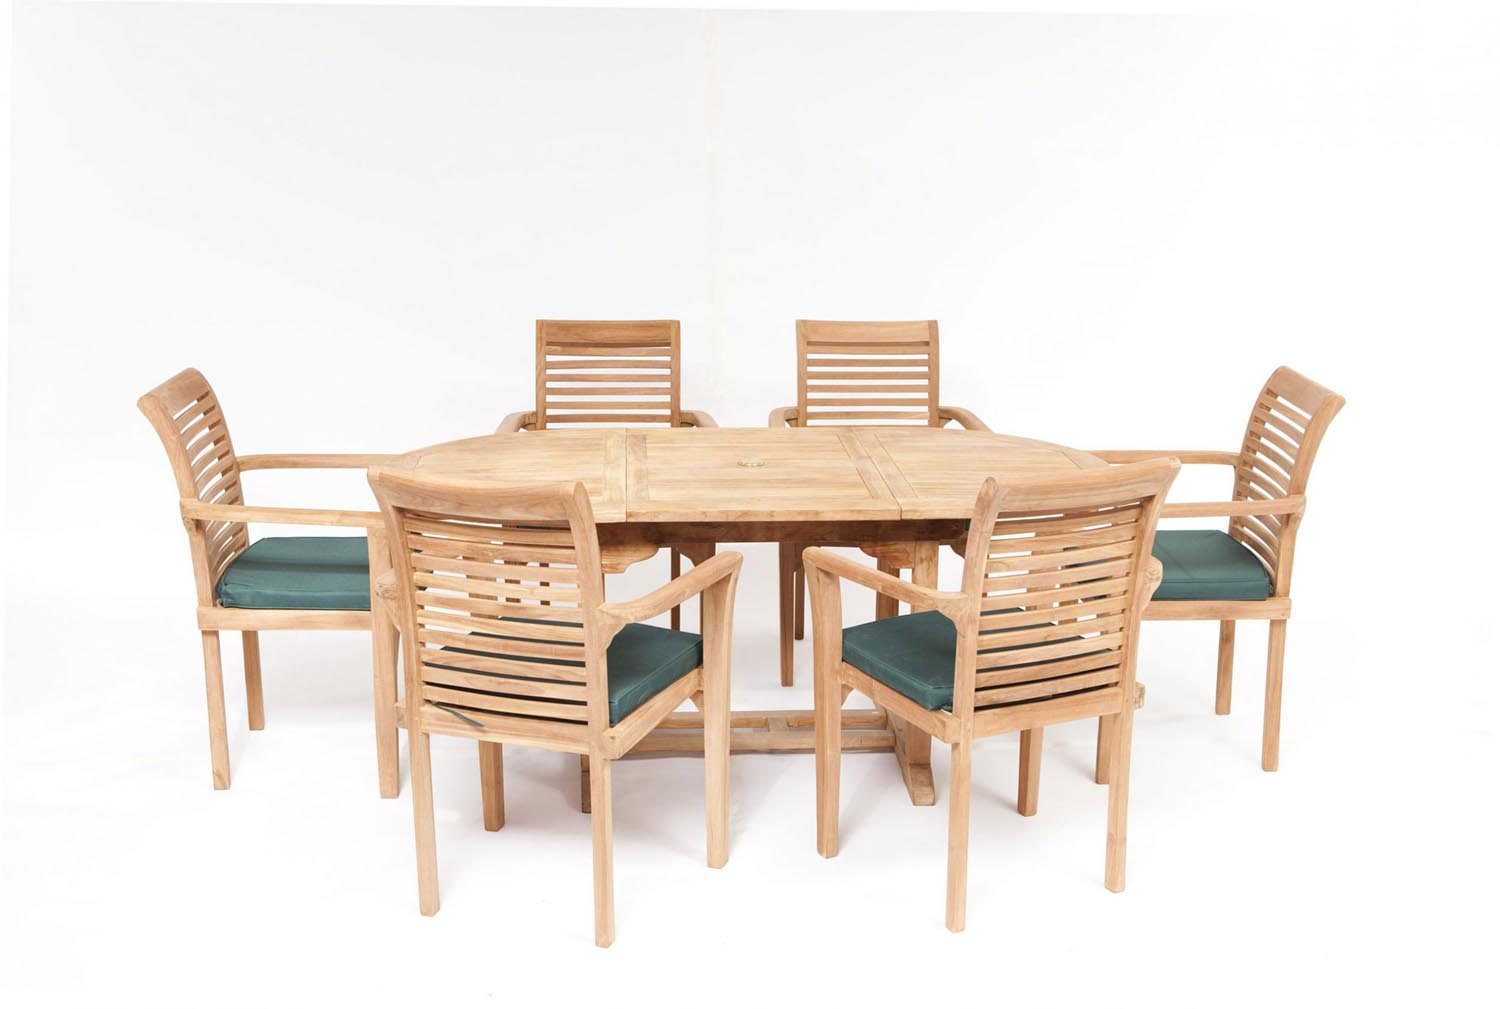 https://www.firstfurniture.co.uk/pub/media/catalog/product/2/5/2500x1682_1468231326ht2messinastacking1_1.jpg